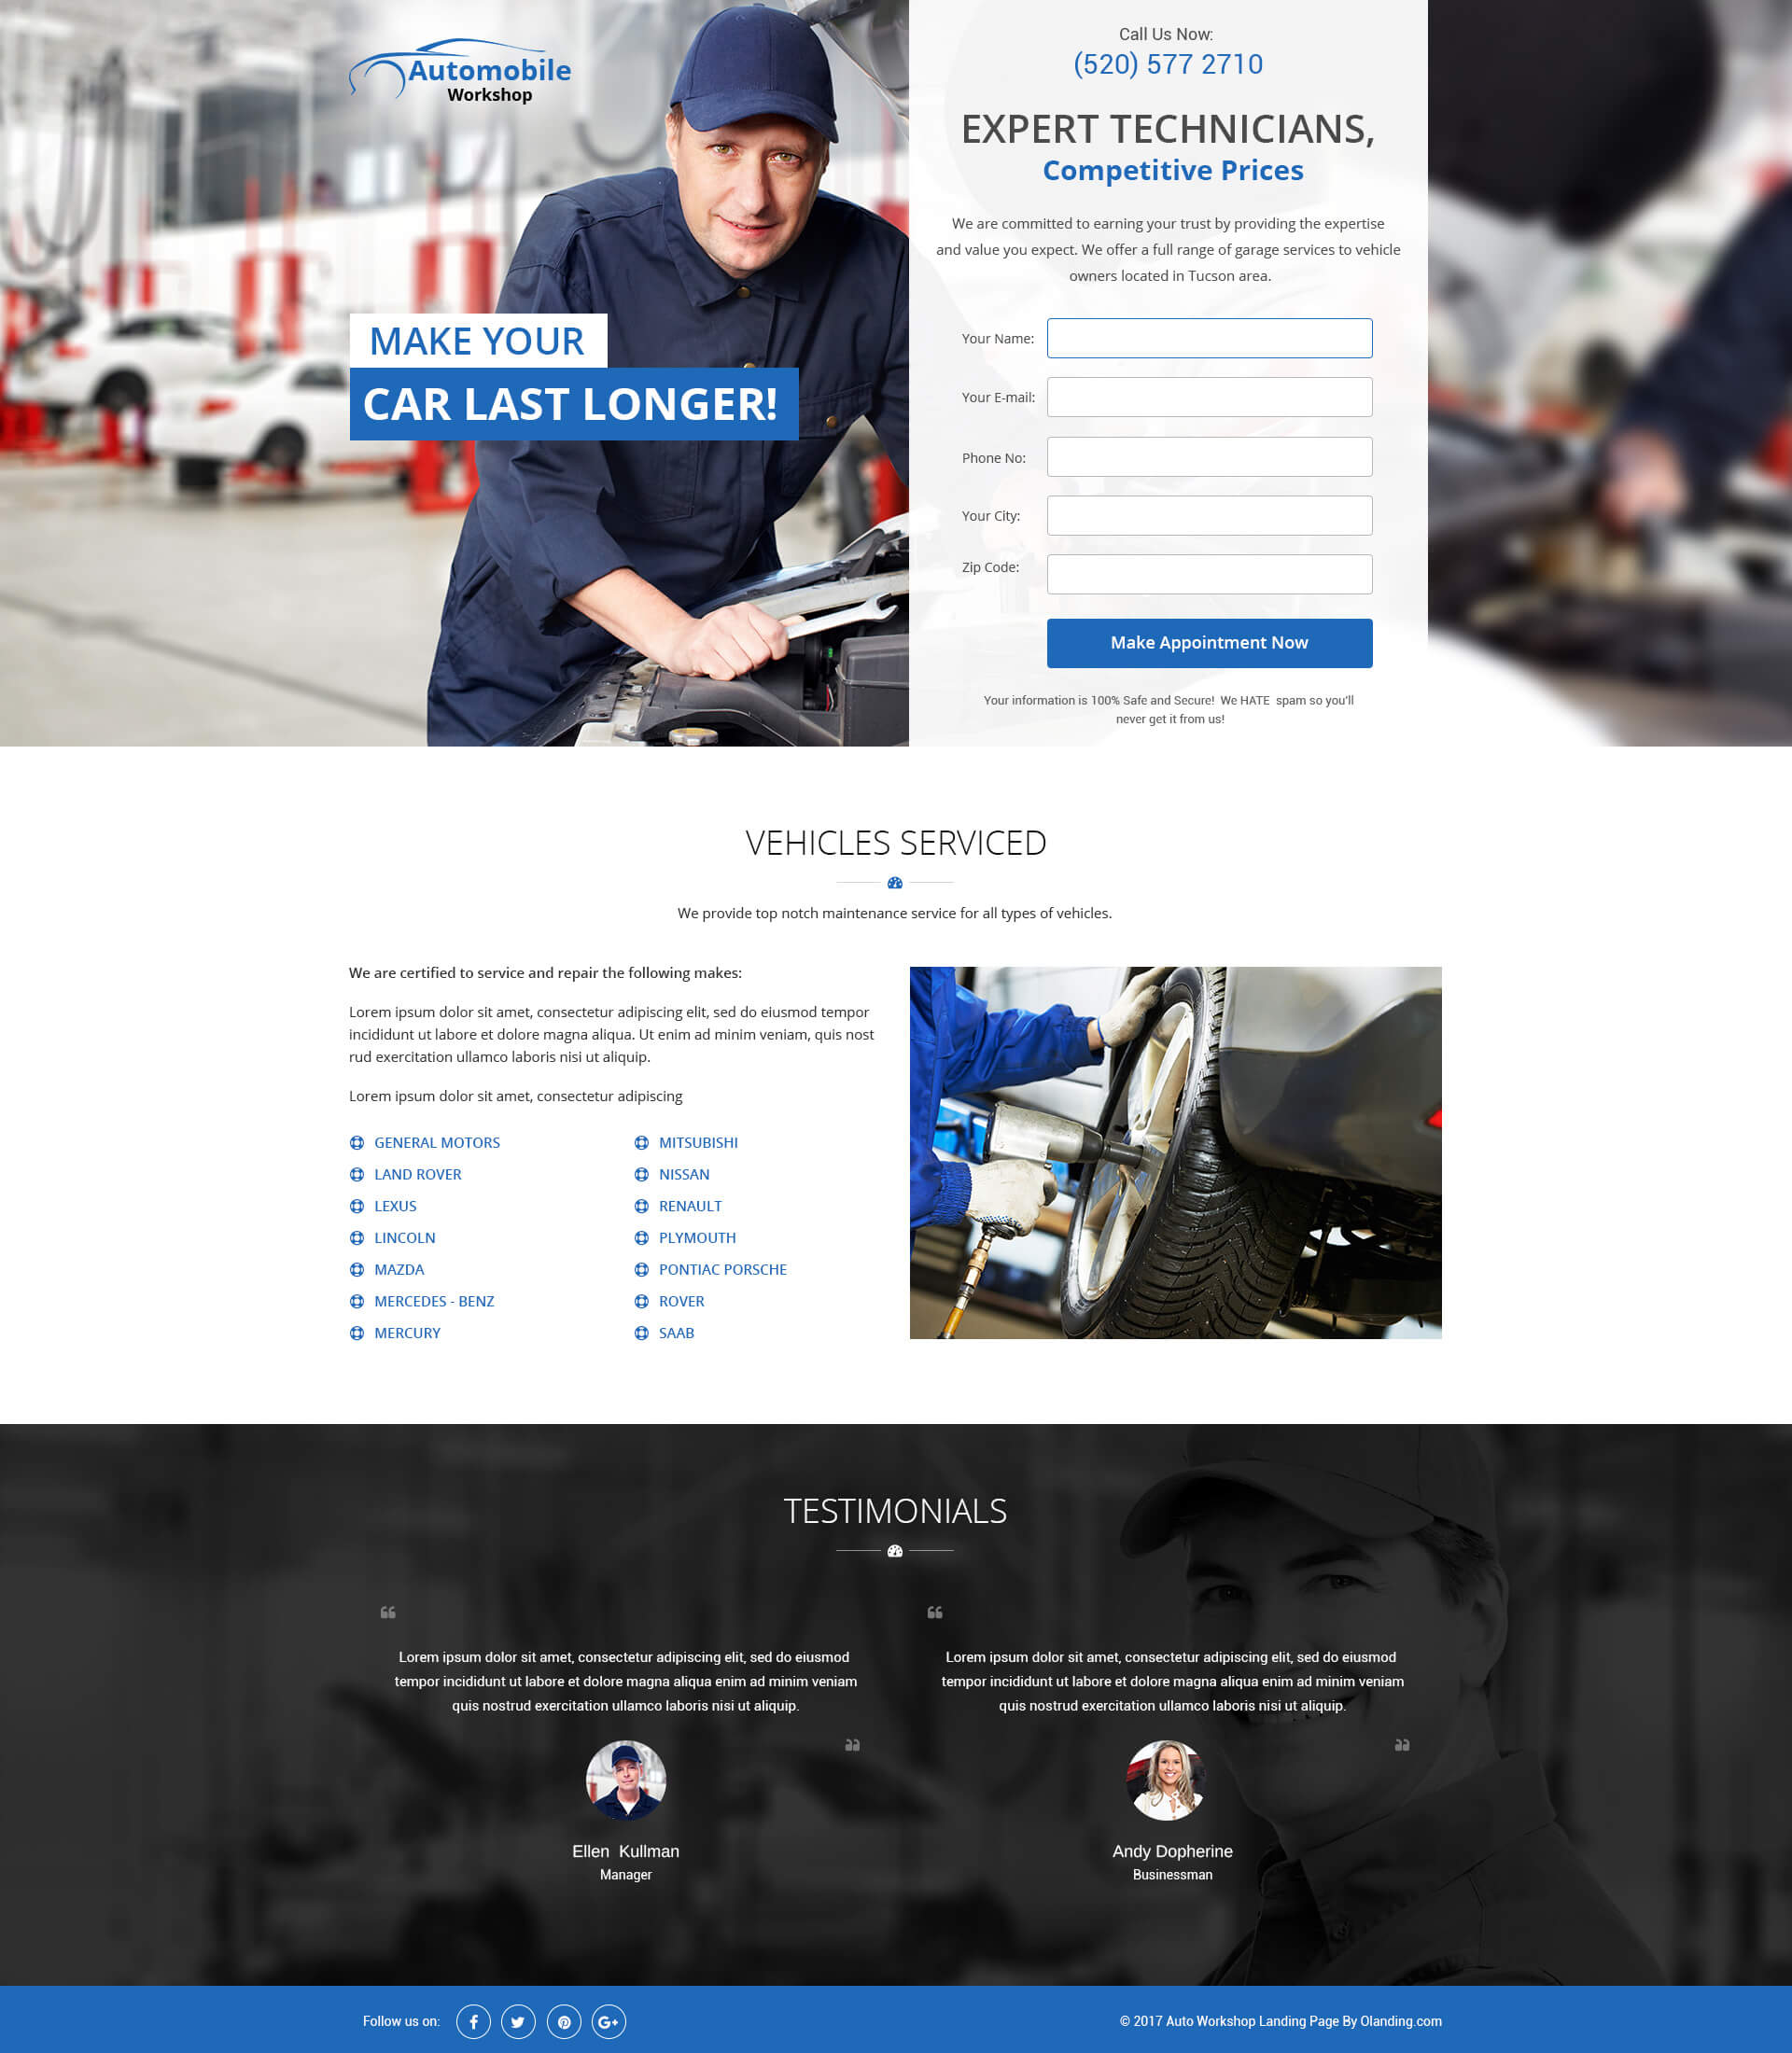 Design car repair workshop - Car Repair Business Landing Page Design To Boost Your Car Repair Business By Capturing Positive And Returning Leads Convert Your Visitor Into A Customer